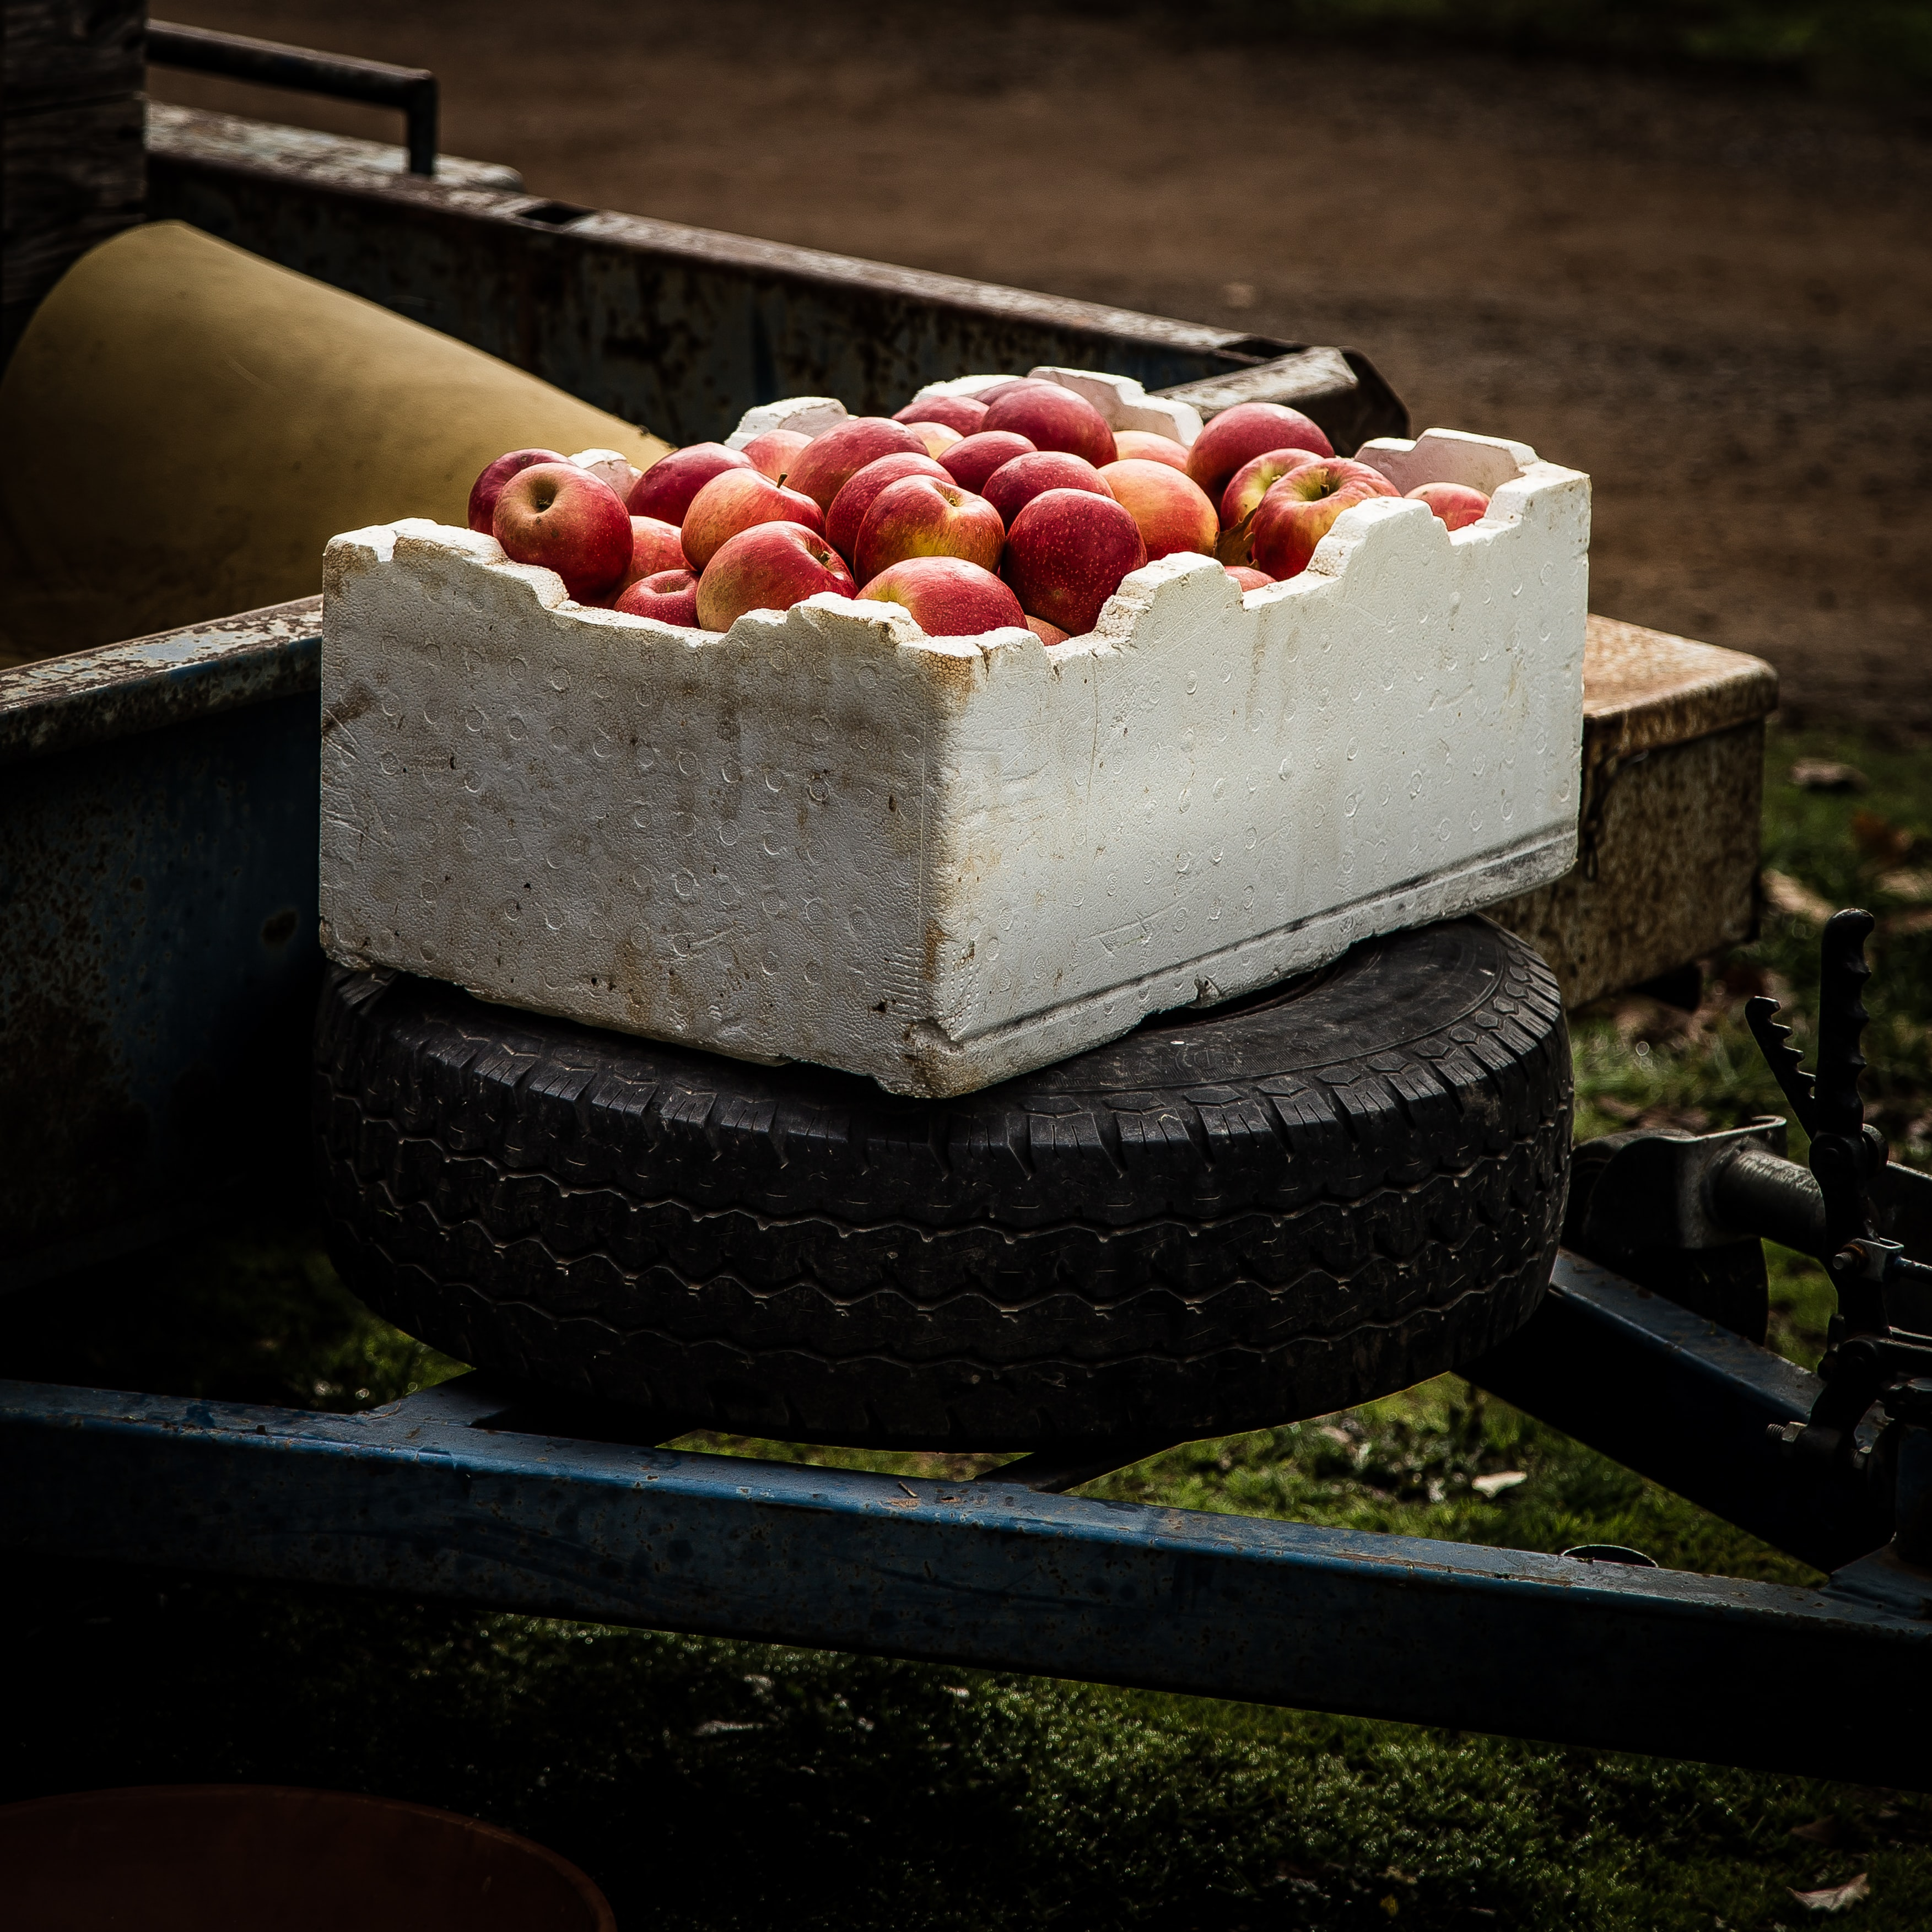 A box full of red apples in Daylesford, sitting on a tire